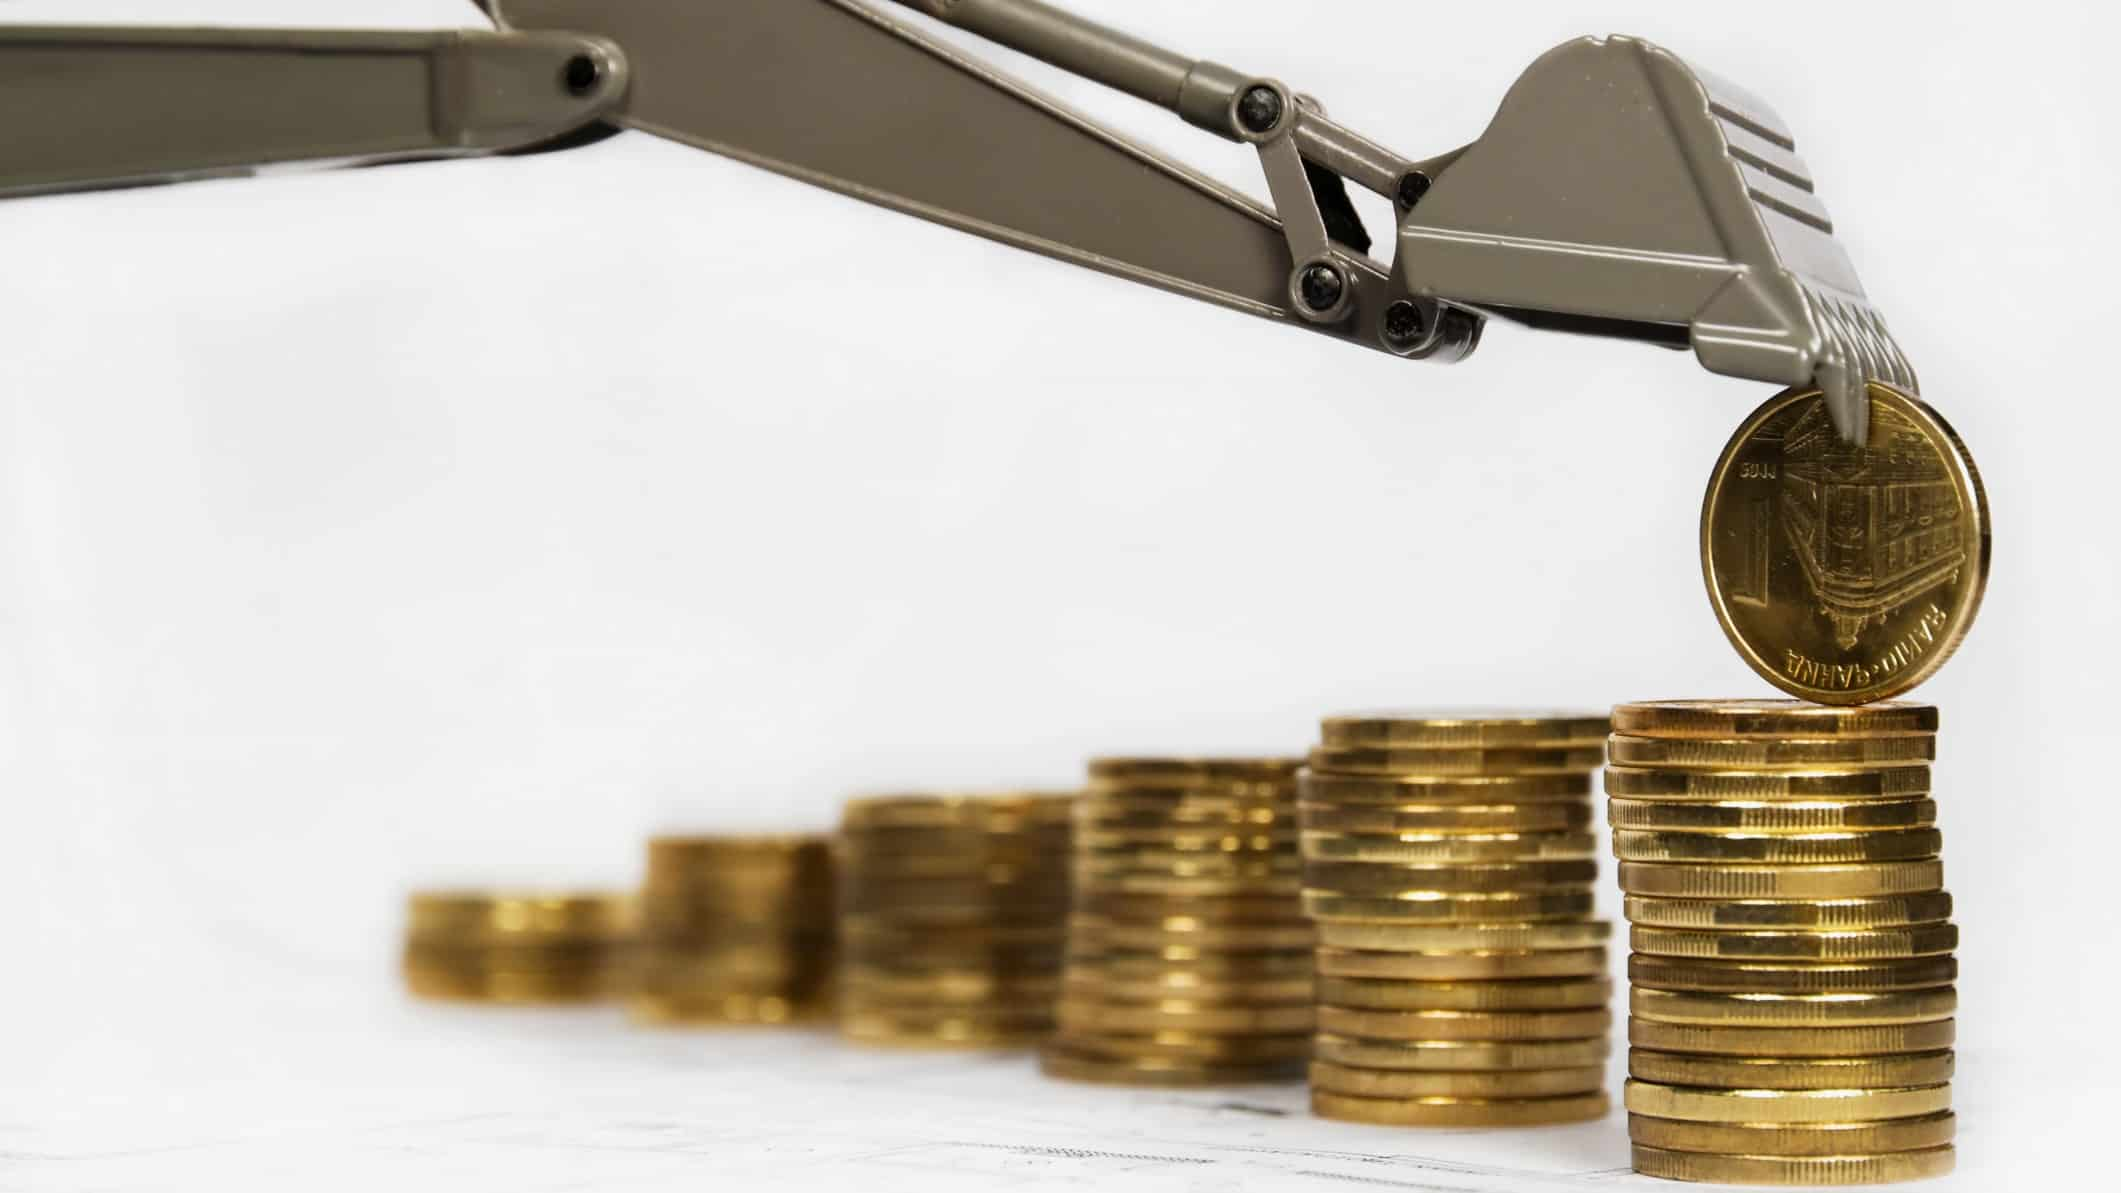 digger placing coin on growing pile of coins, boral share price